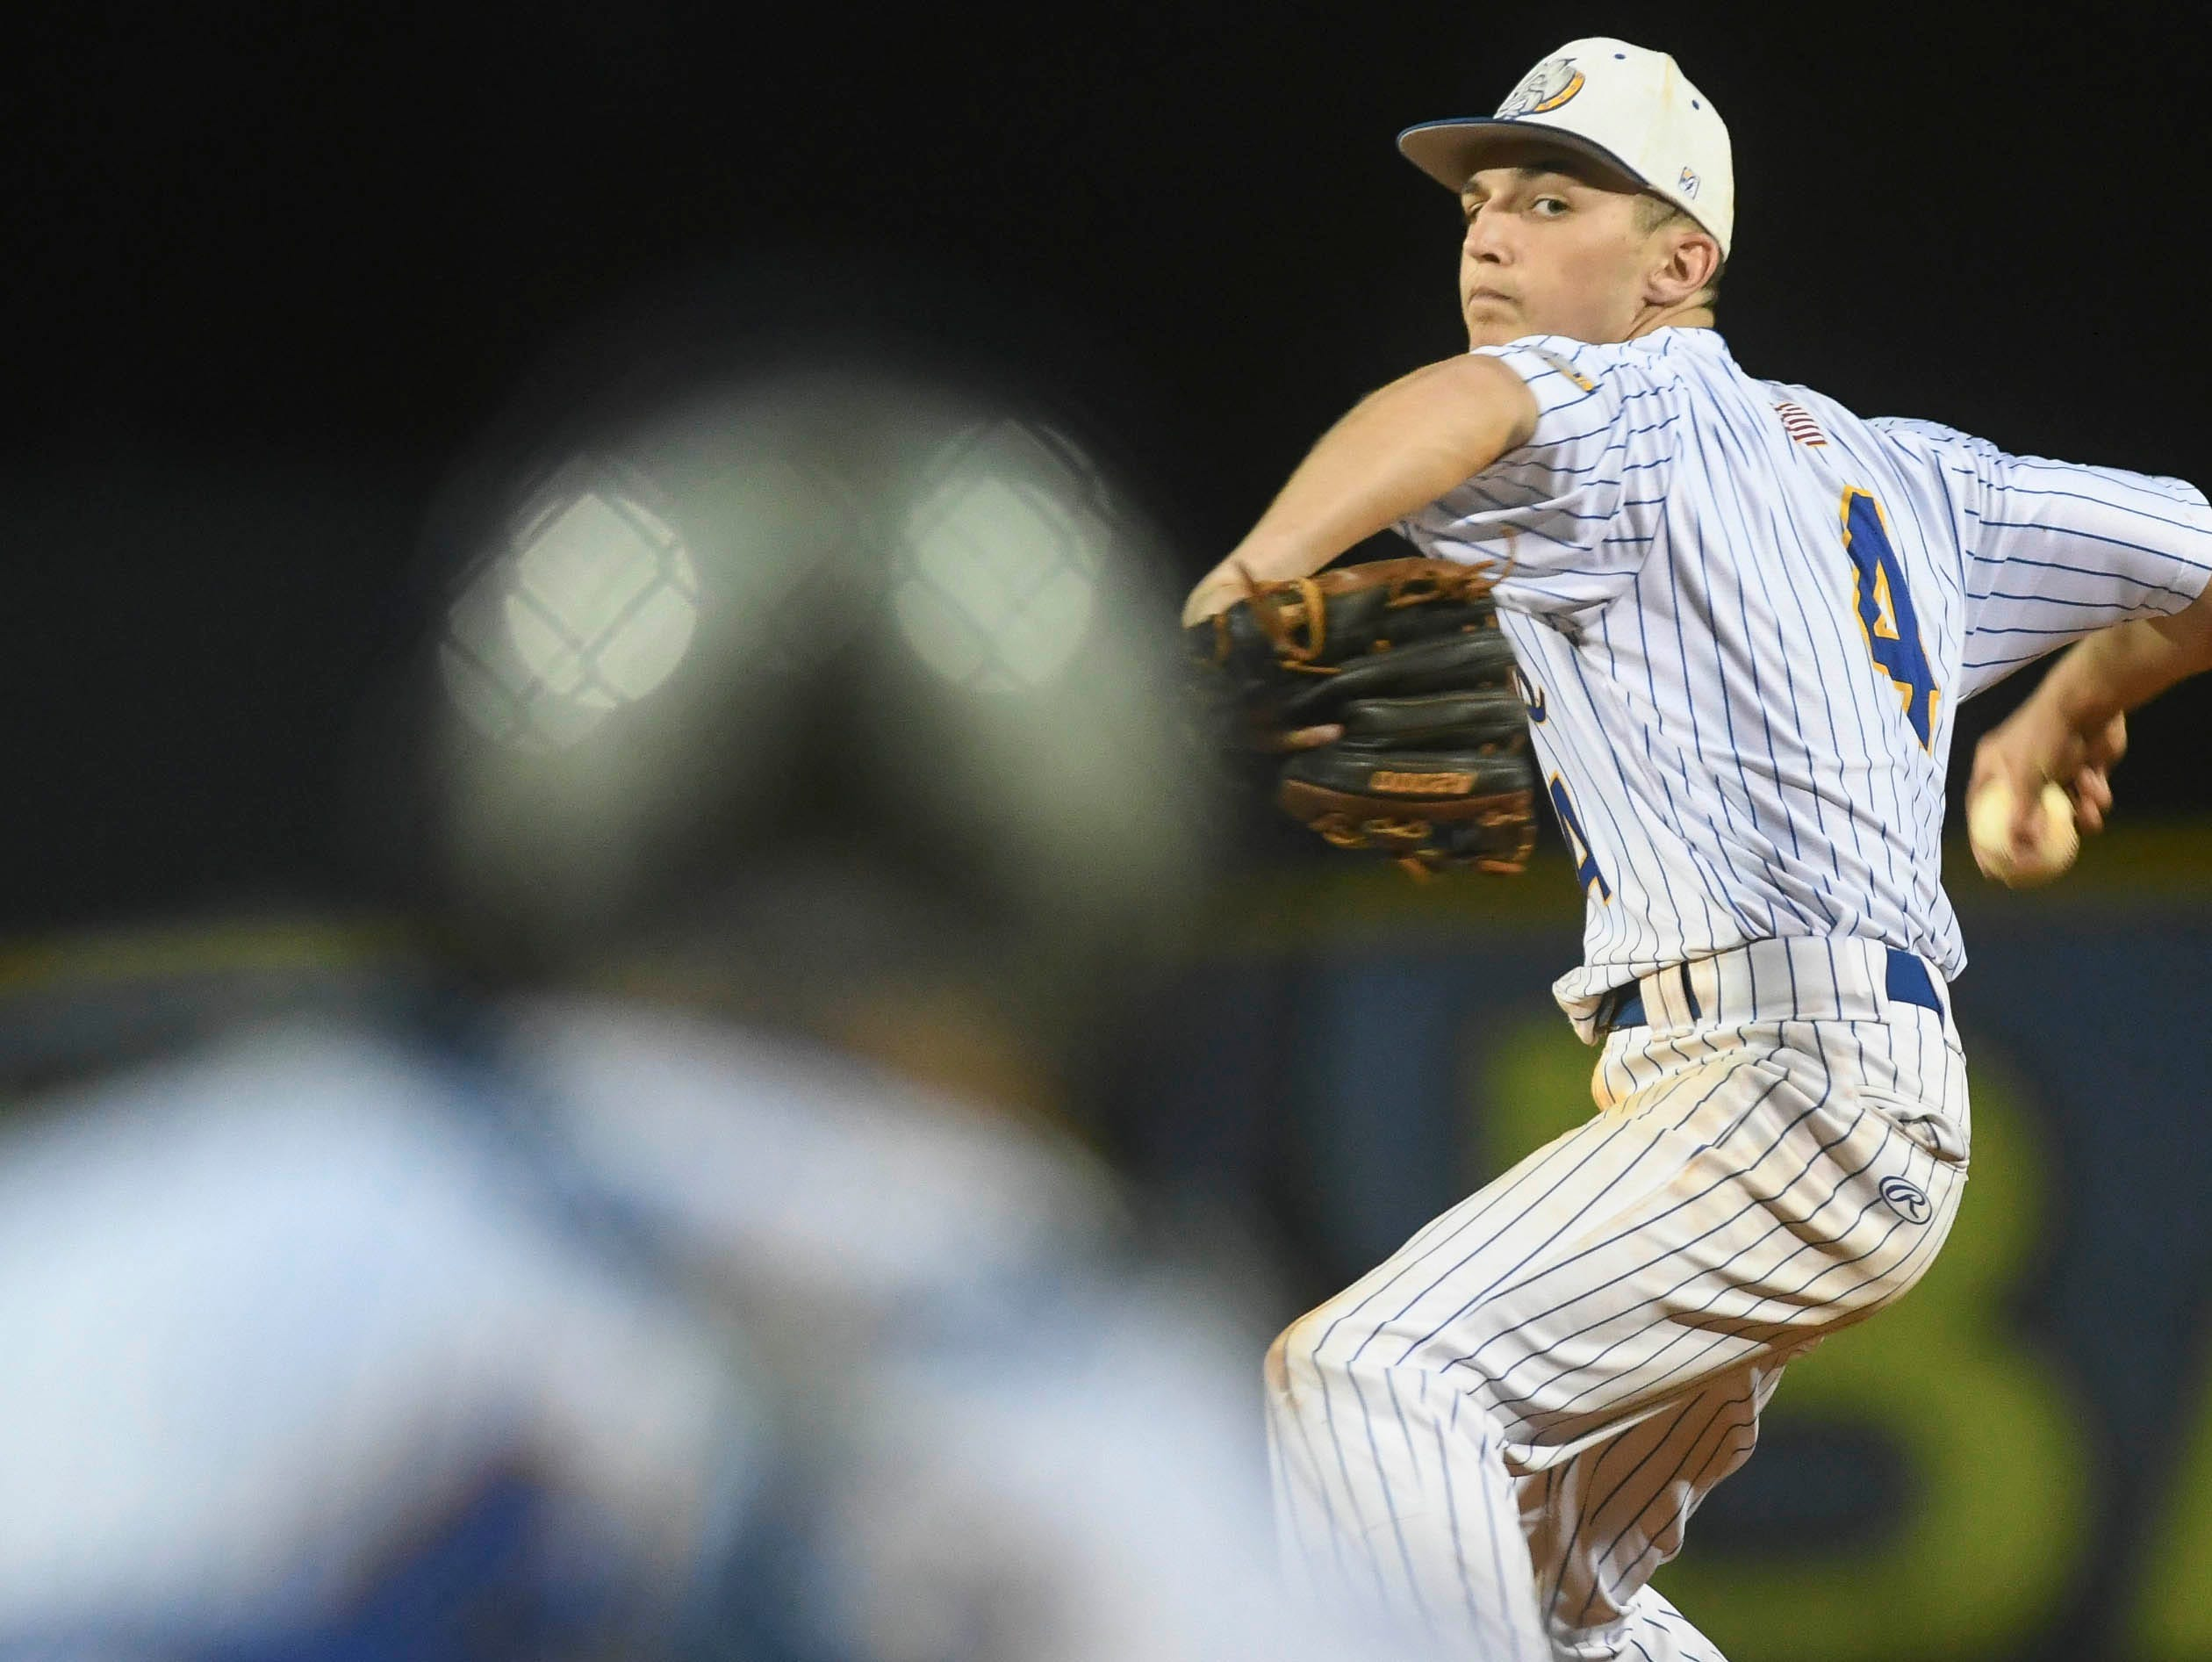 Titusville's Trey Felker pitches during Thursday's game against Astronaut.